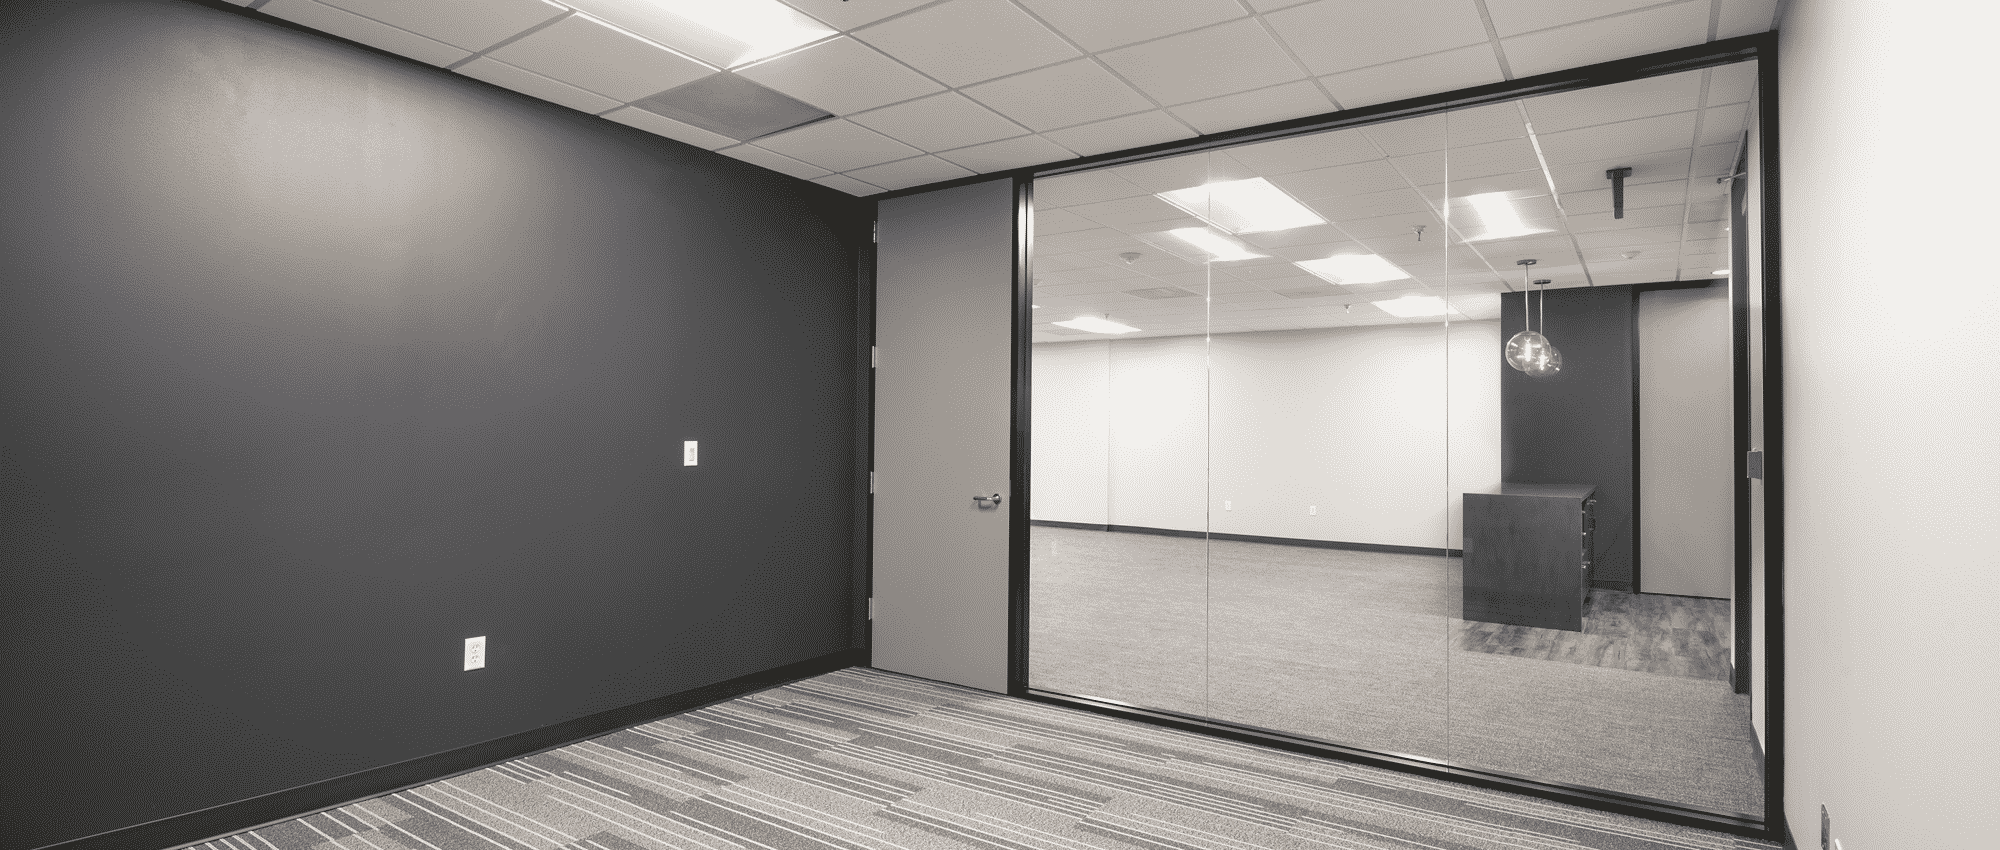 Spec Suite Office | Spec Suite Definition and Pros and Cons